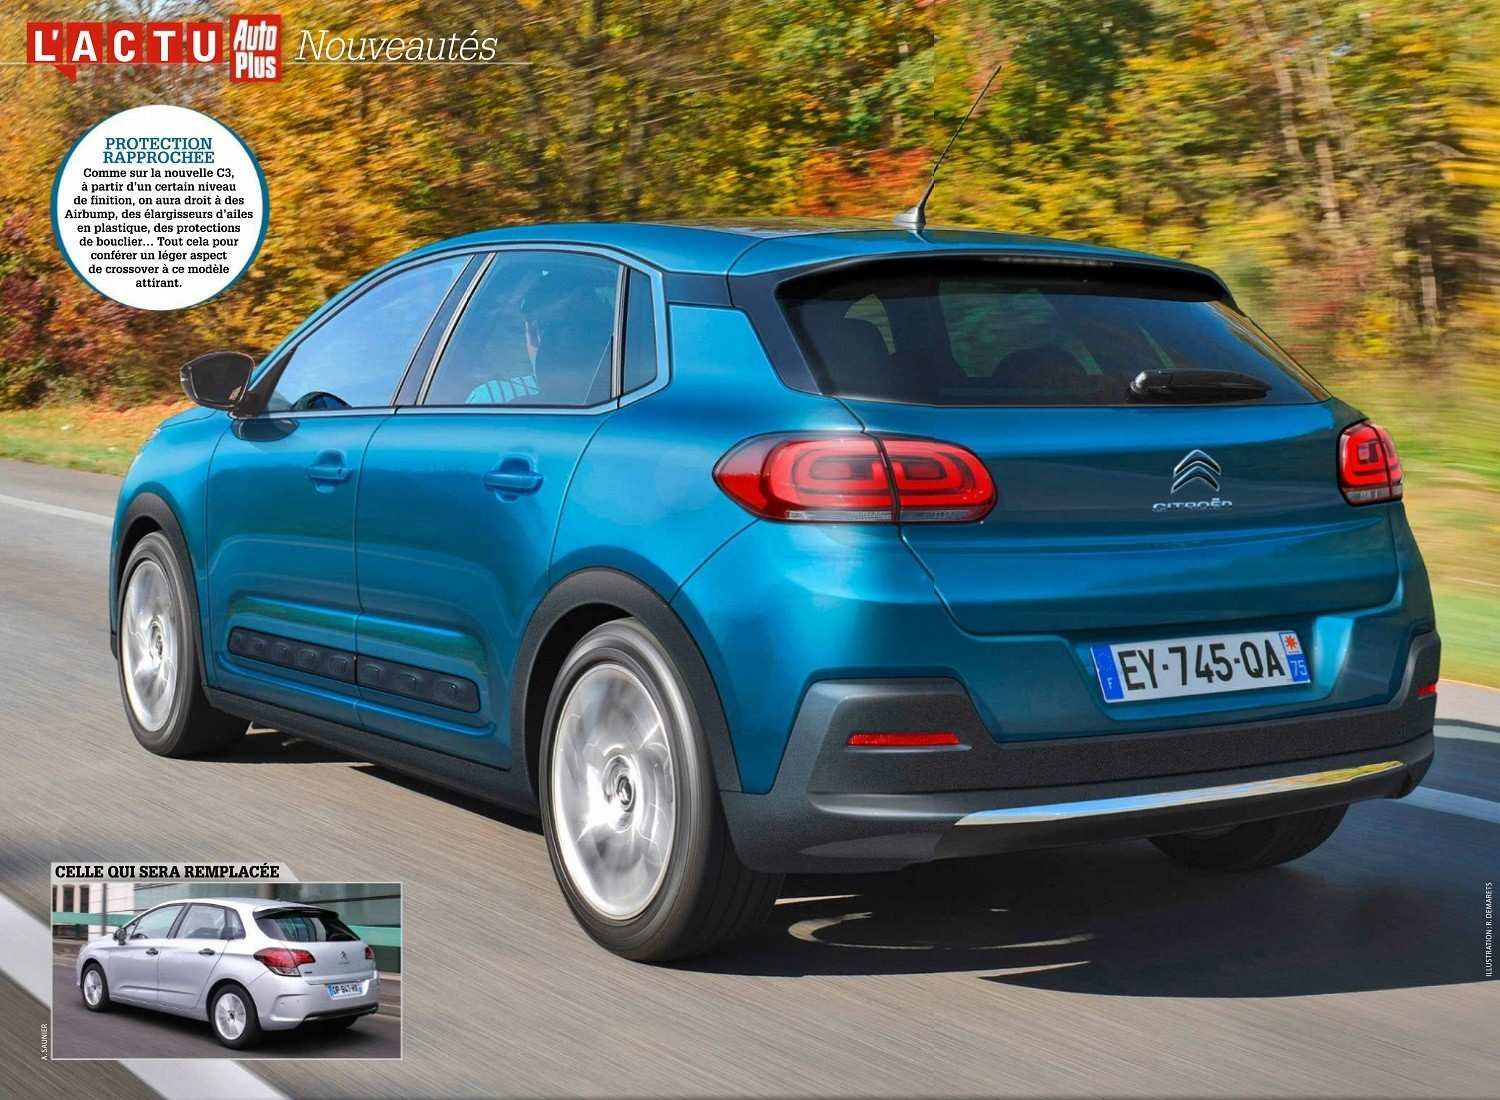 34 New Nouvelle Citroen 2020 Review And Release Date